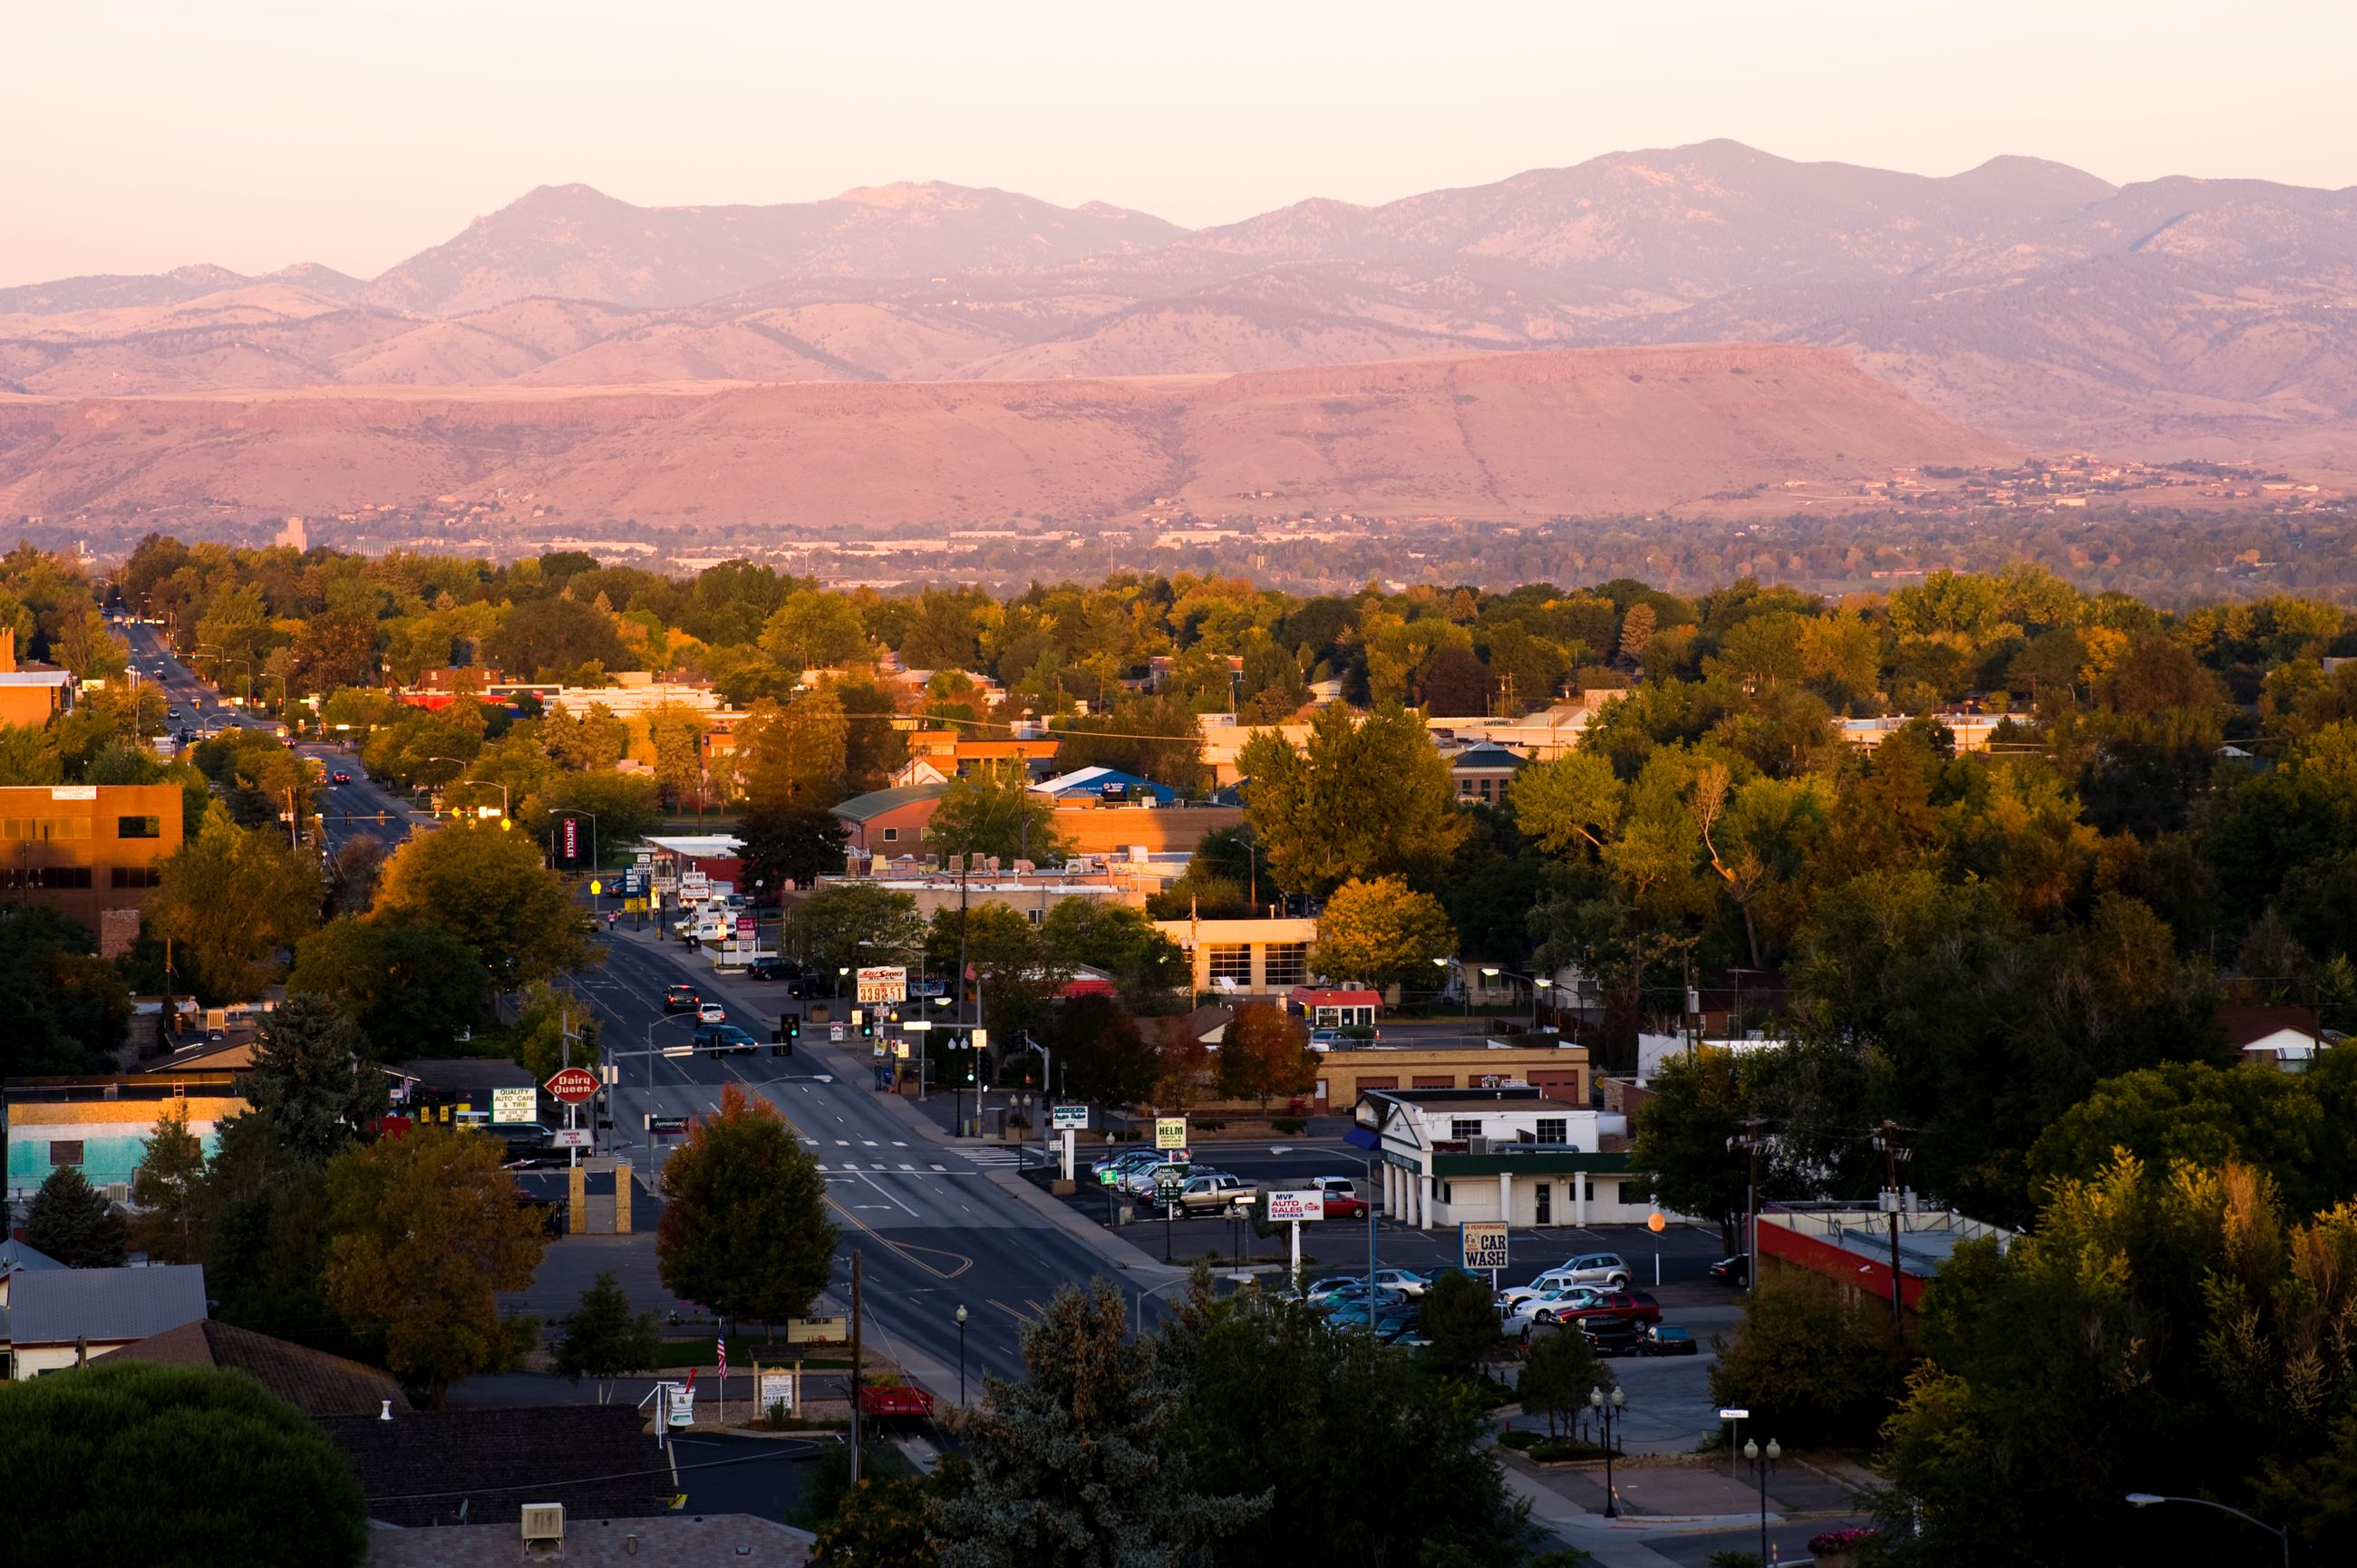 City of Wheat Ridge View of the Mountains